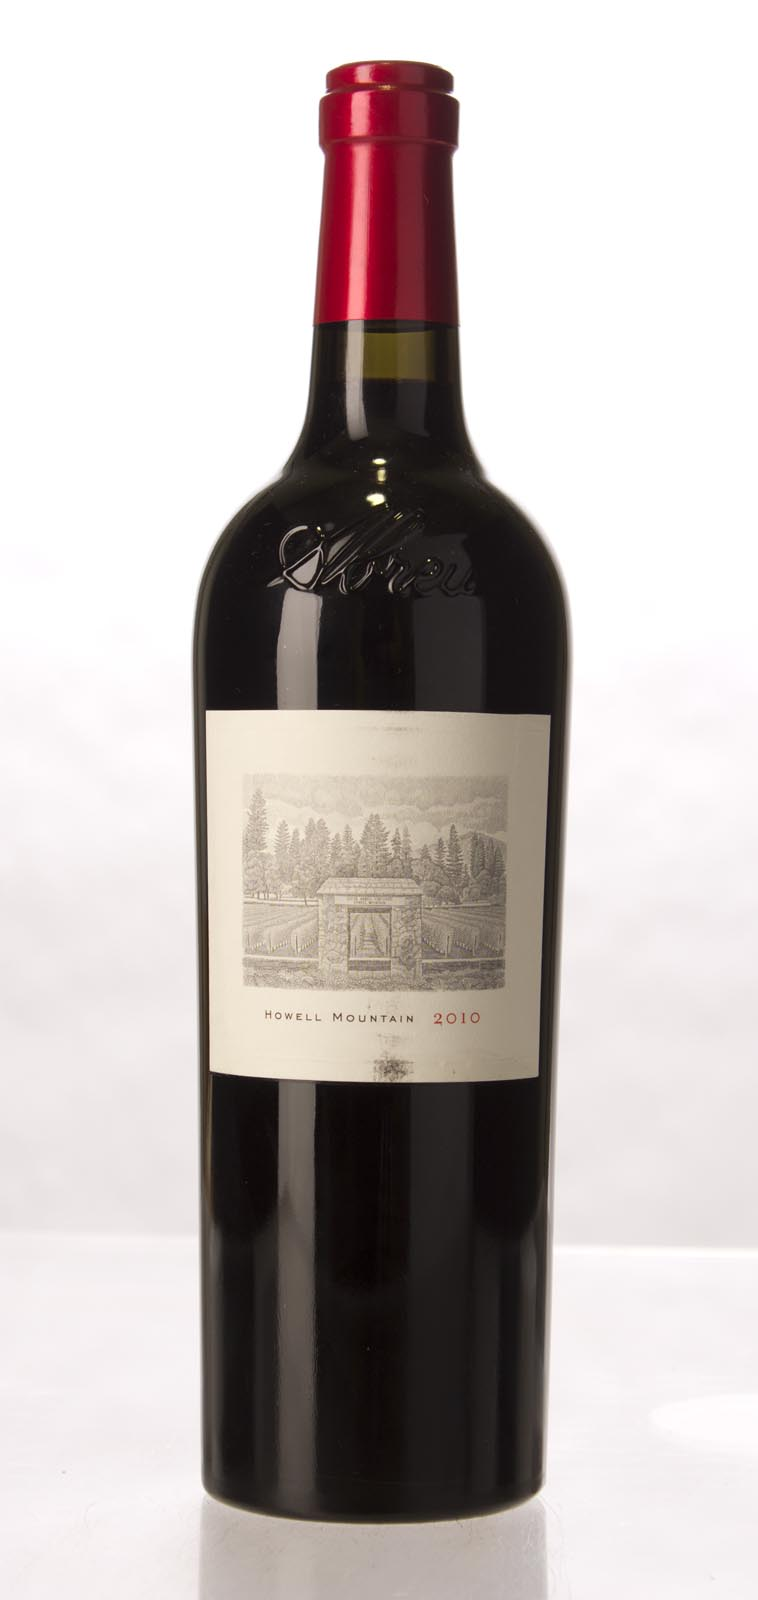 Abreu Cabernet Sauvignon Howell Mountain 2010, 750mL (AG100) from The BPW - Merchants of rare and fine wines.